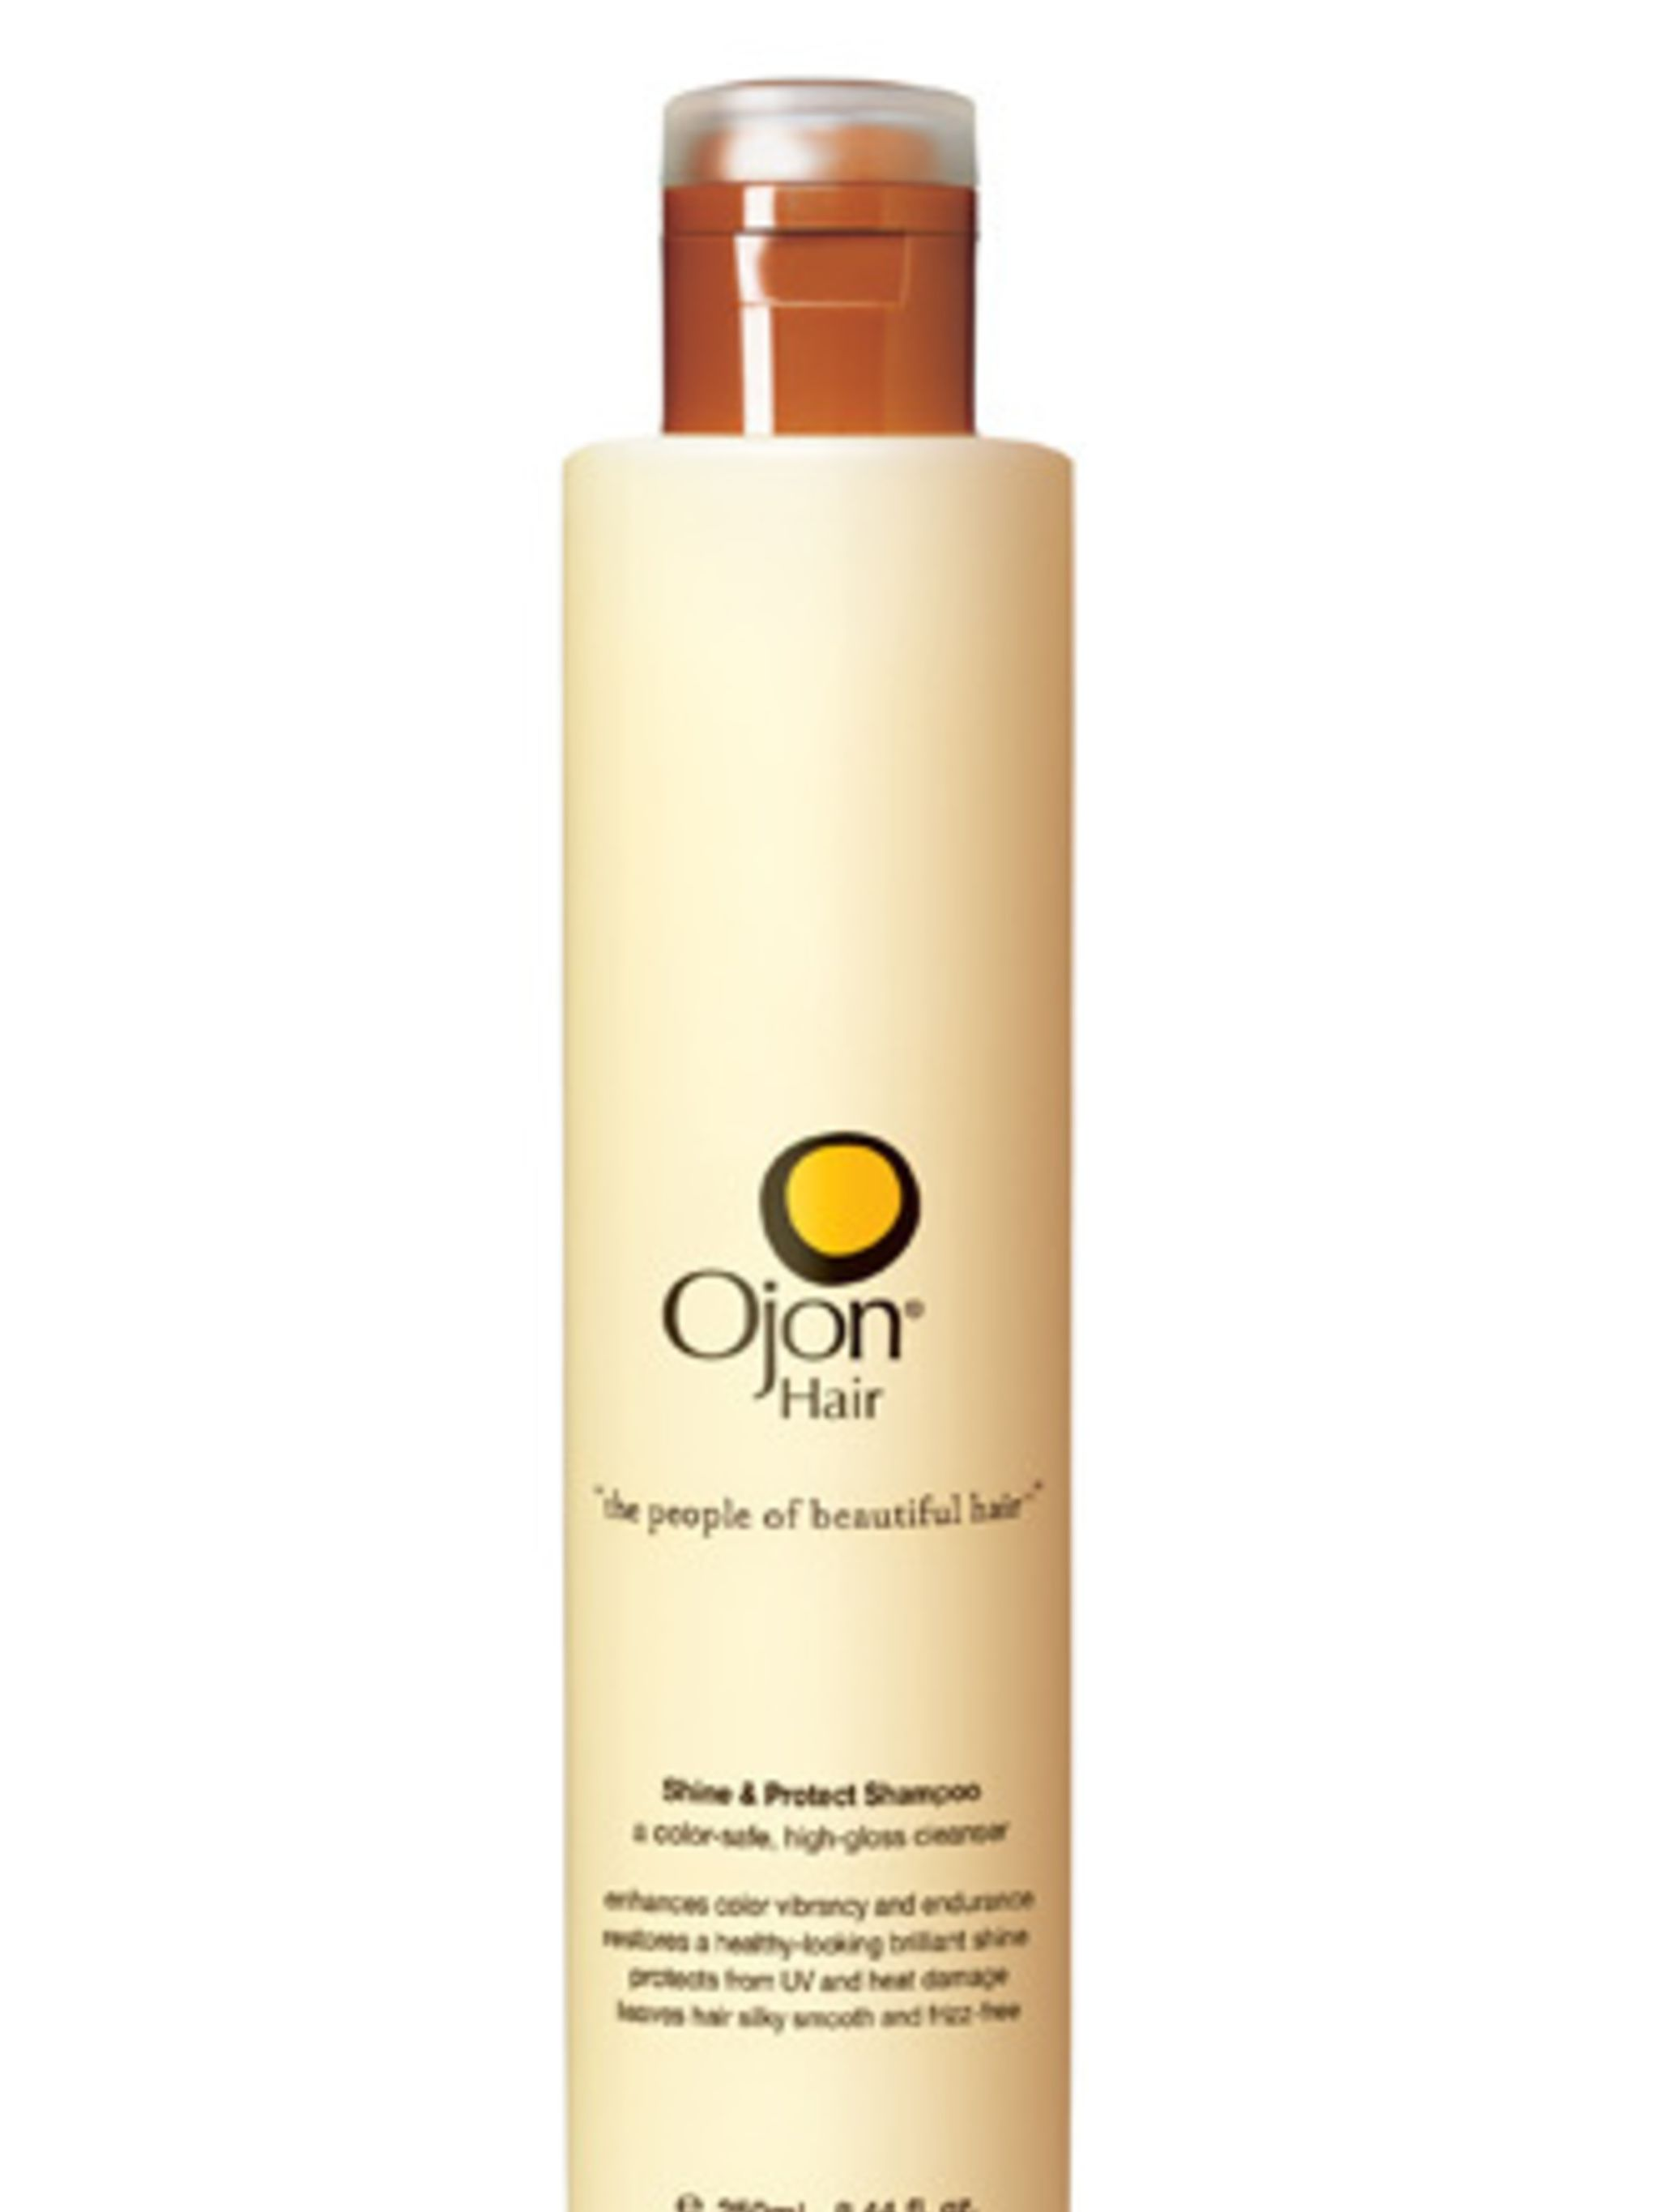 <p><strong>…that conditions, adds shine and boosts colour</strong>Ojon's shampoo doesn't just give your hair a good cleanse, it also imparts shine thanks to the broccoli seed oil. It's also packed with papaya extract which softens the hair, while Lime pee